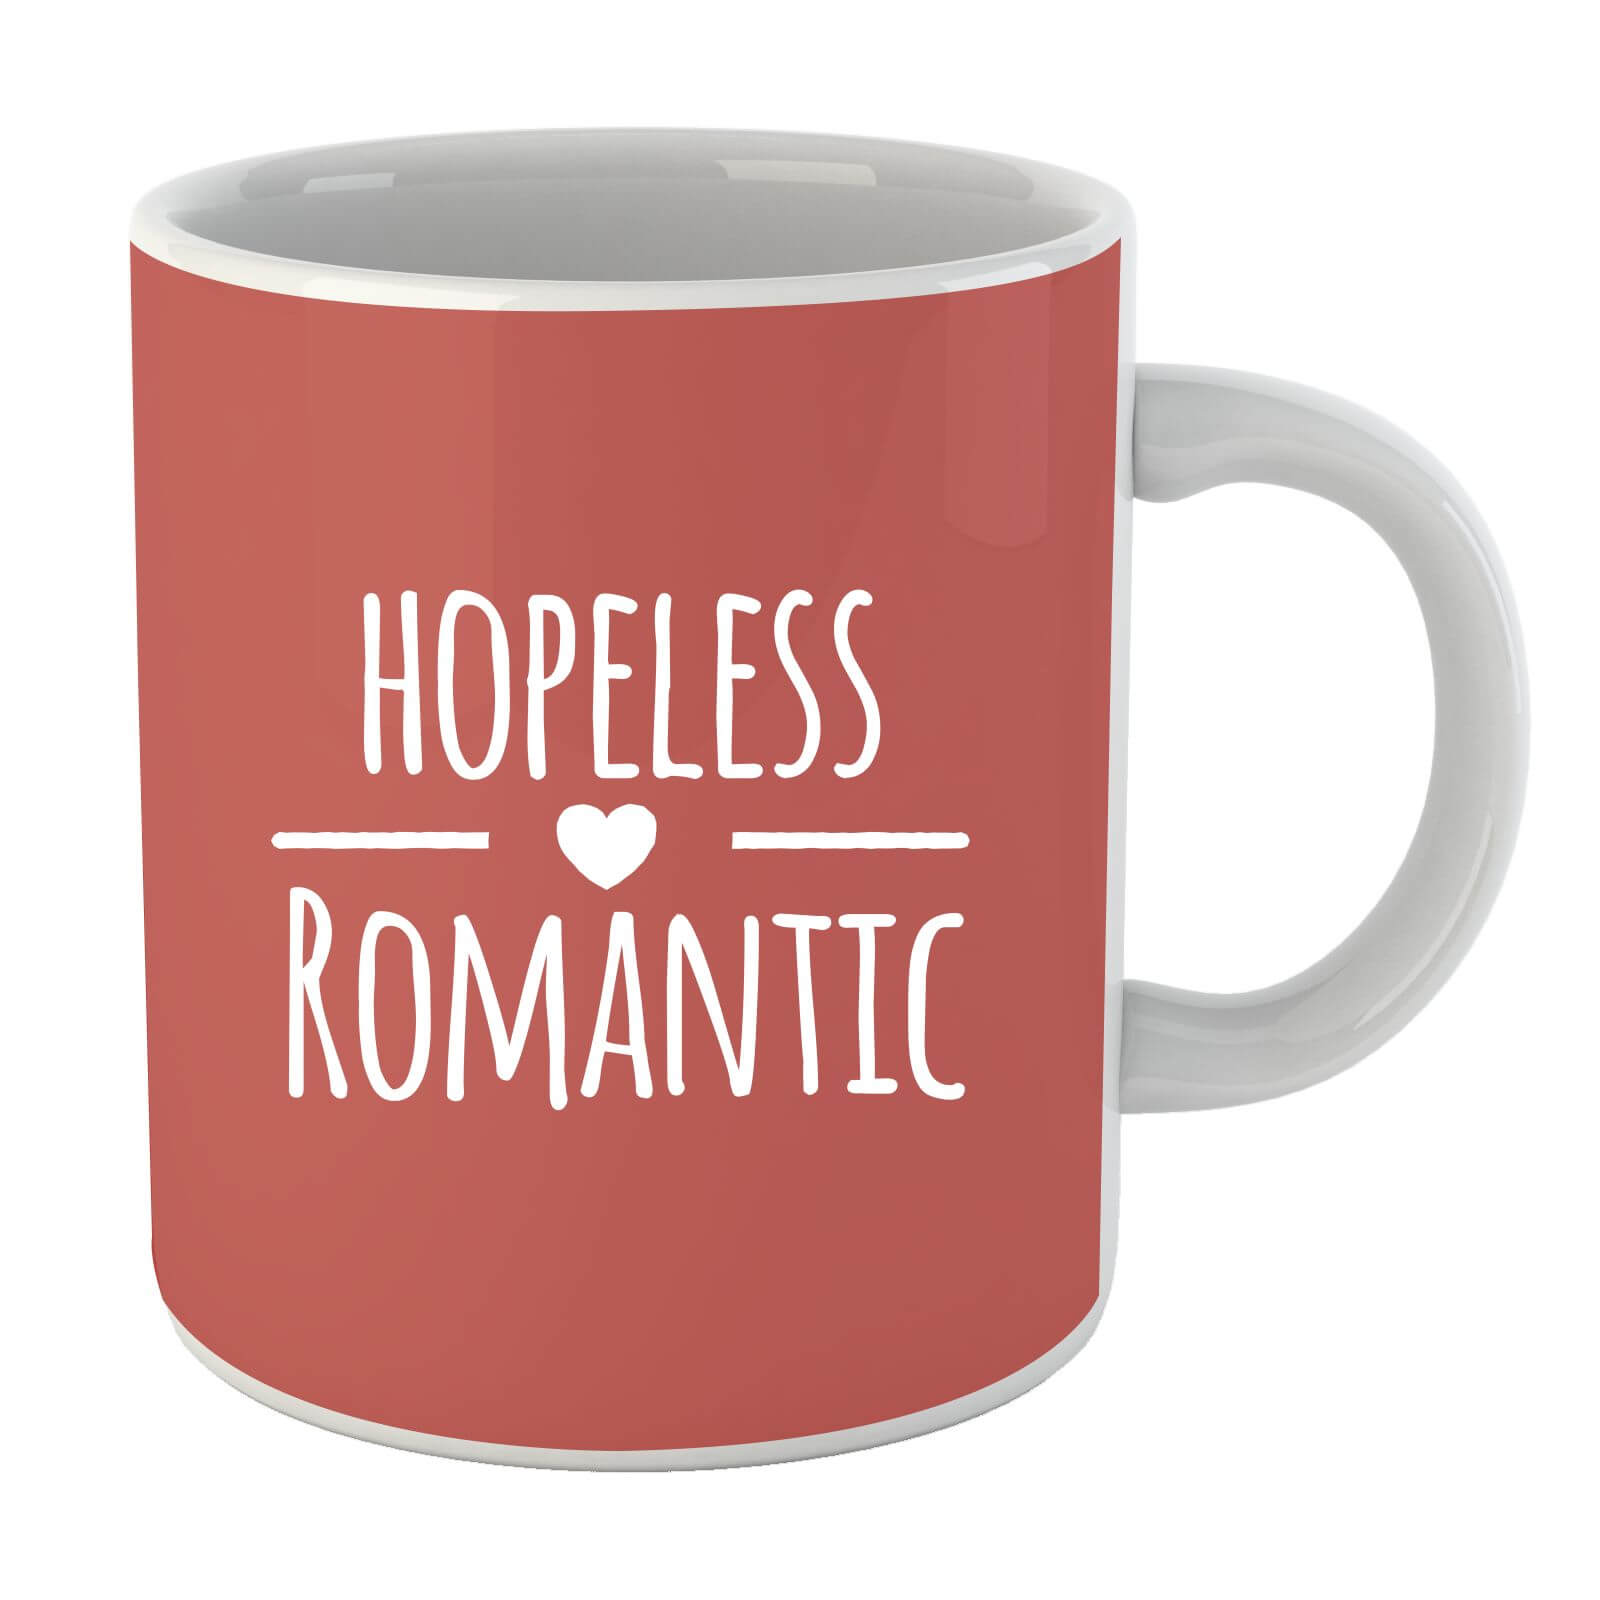 Hopeless Romantic Mug